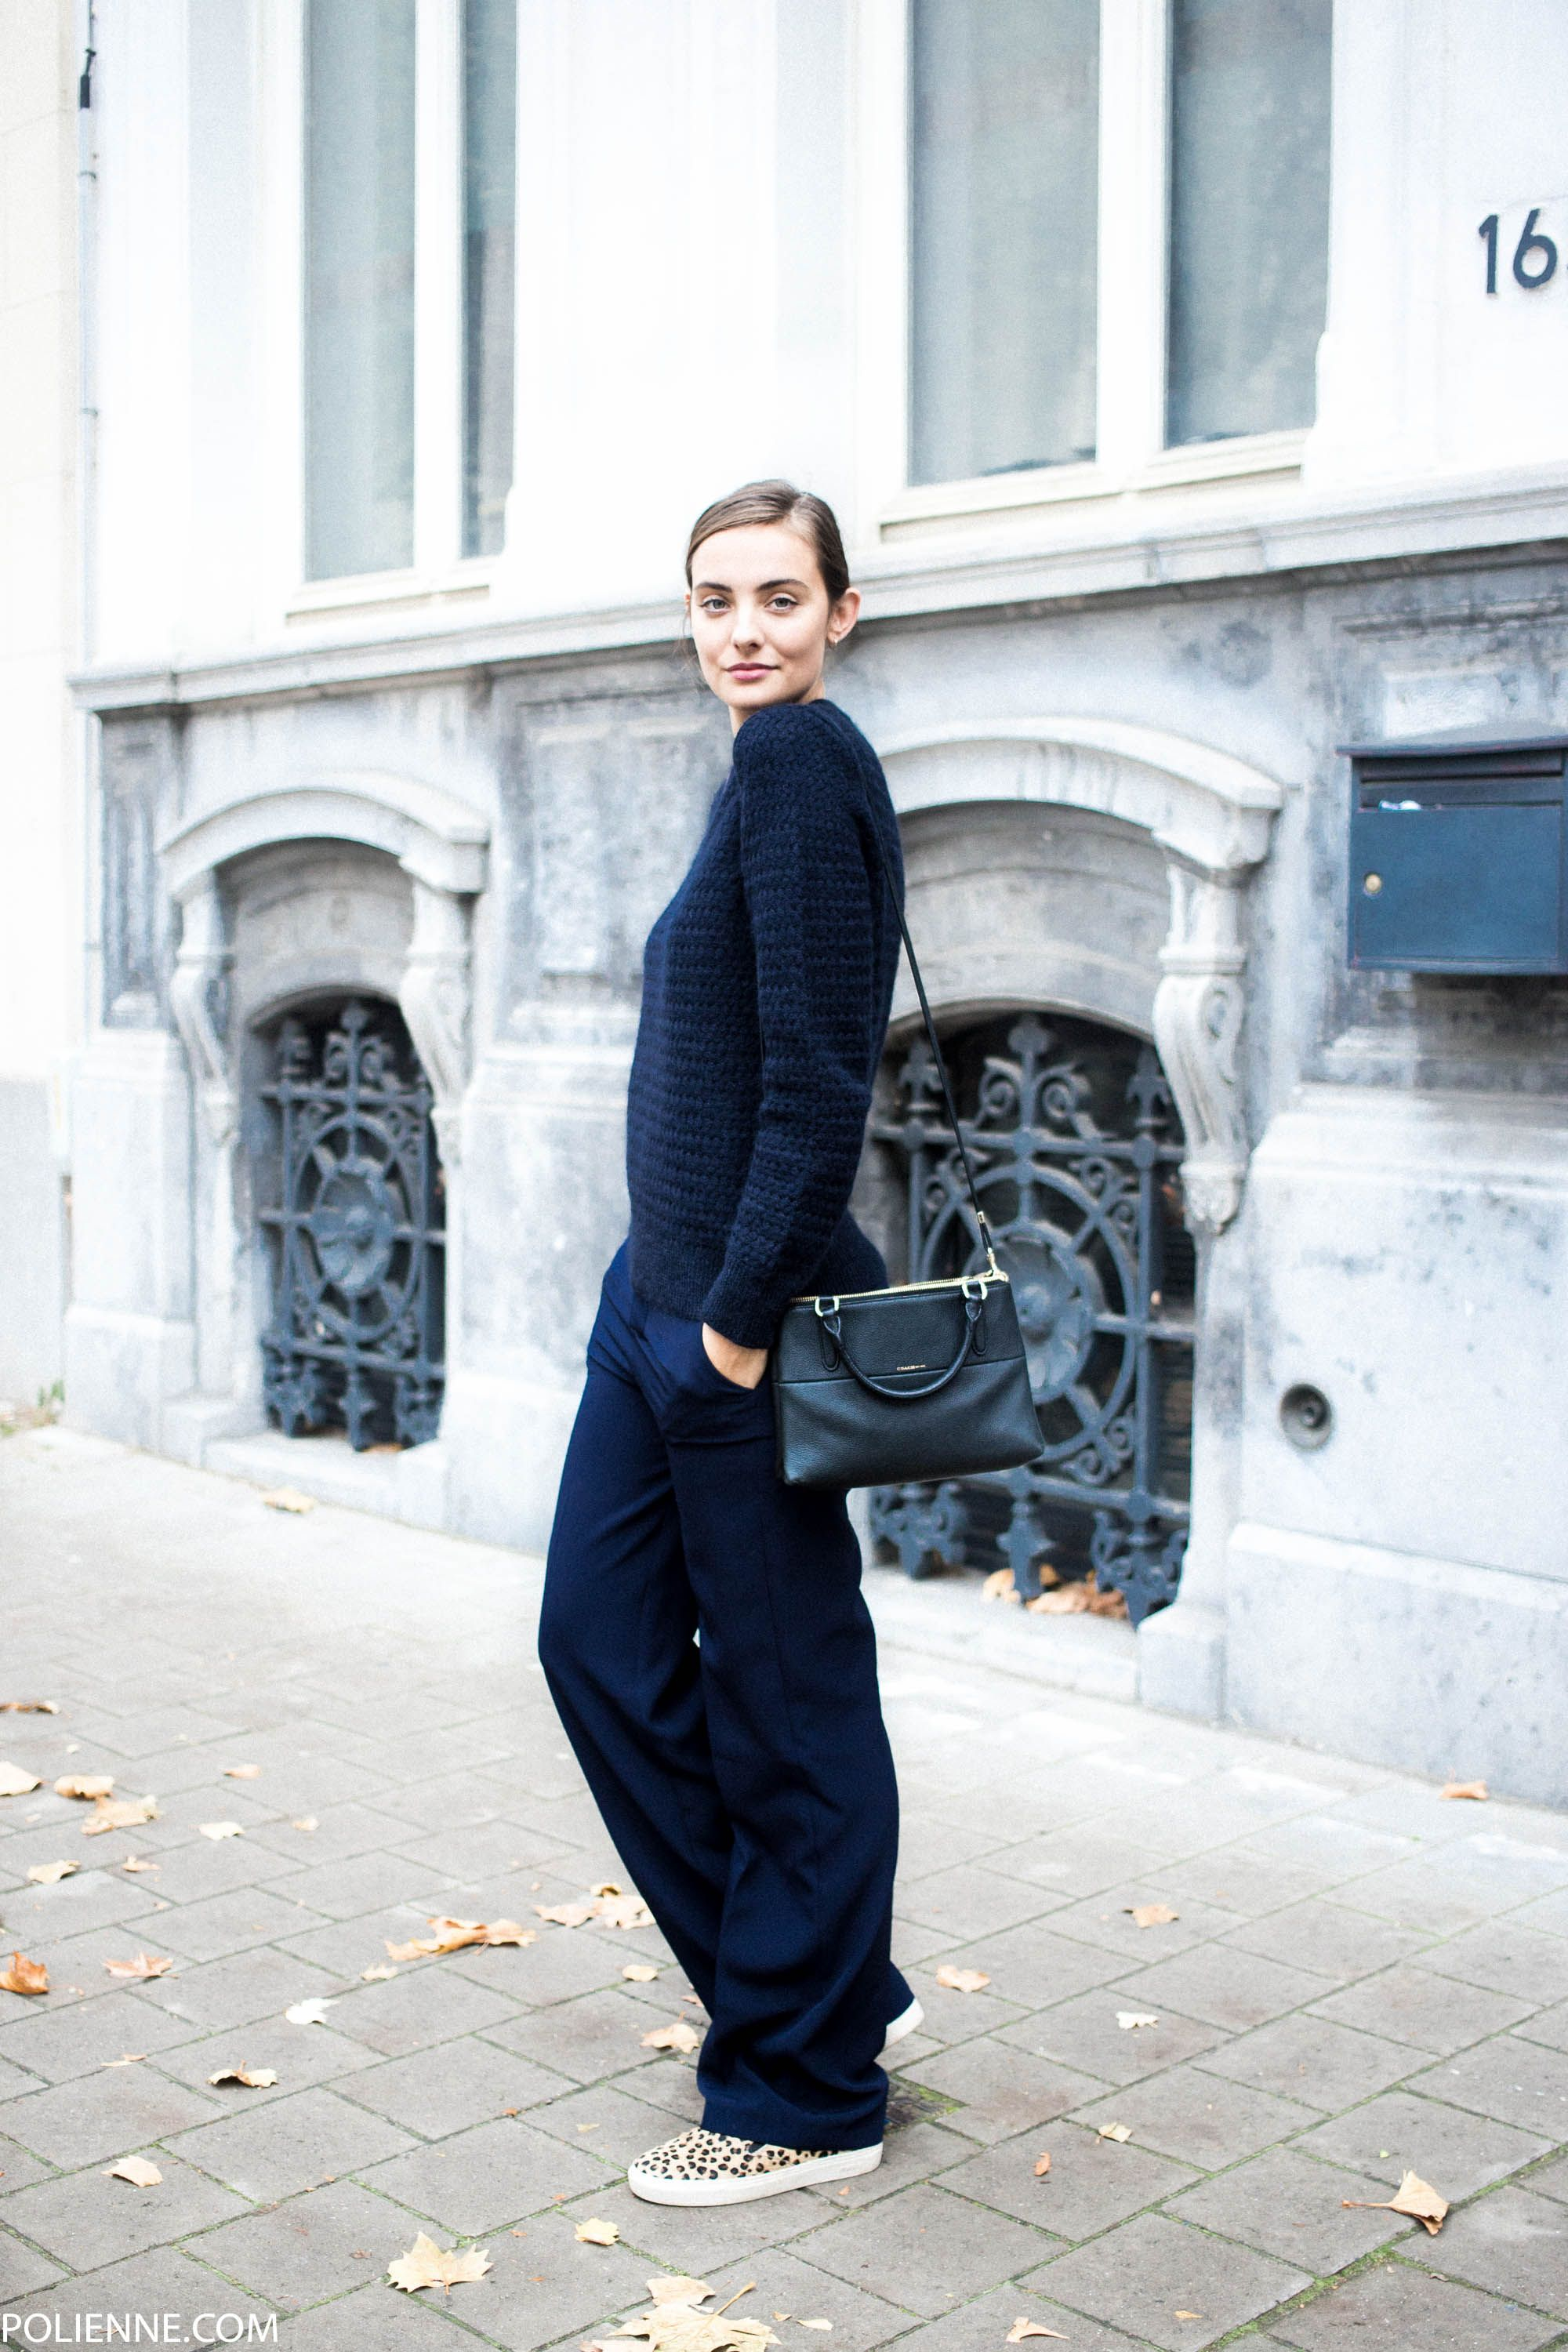 POLIENNE | a personal style diary